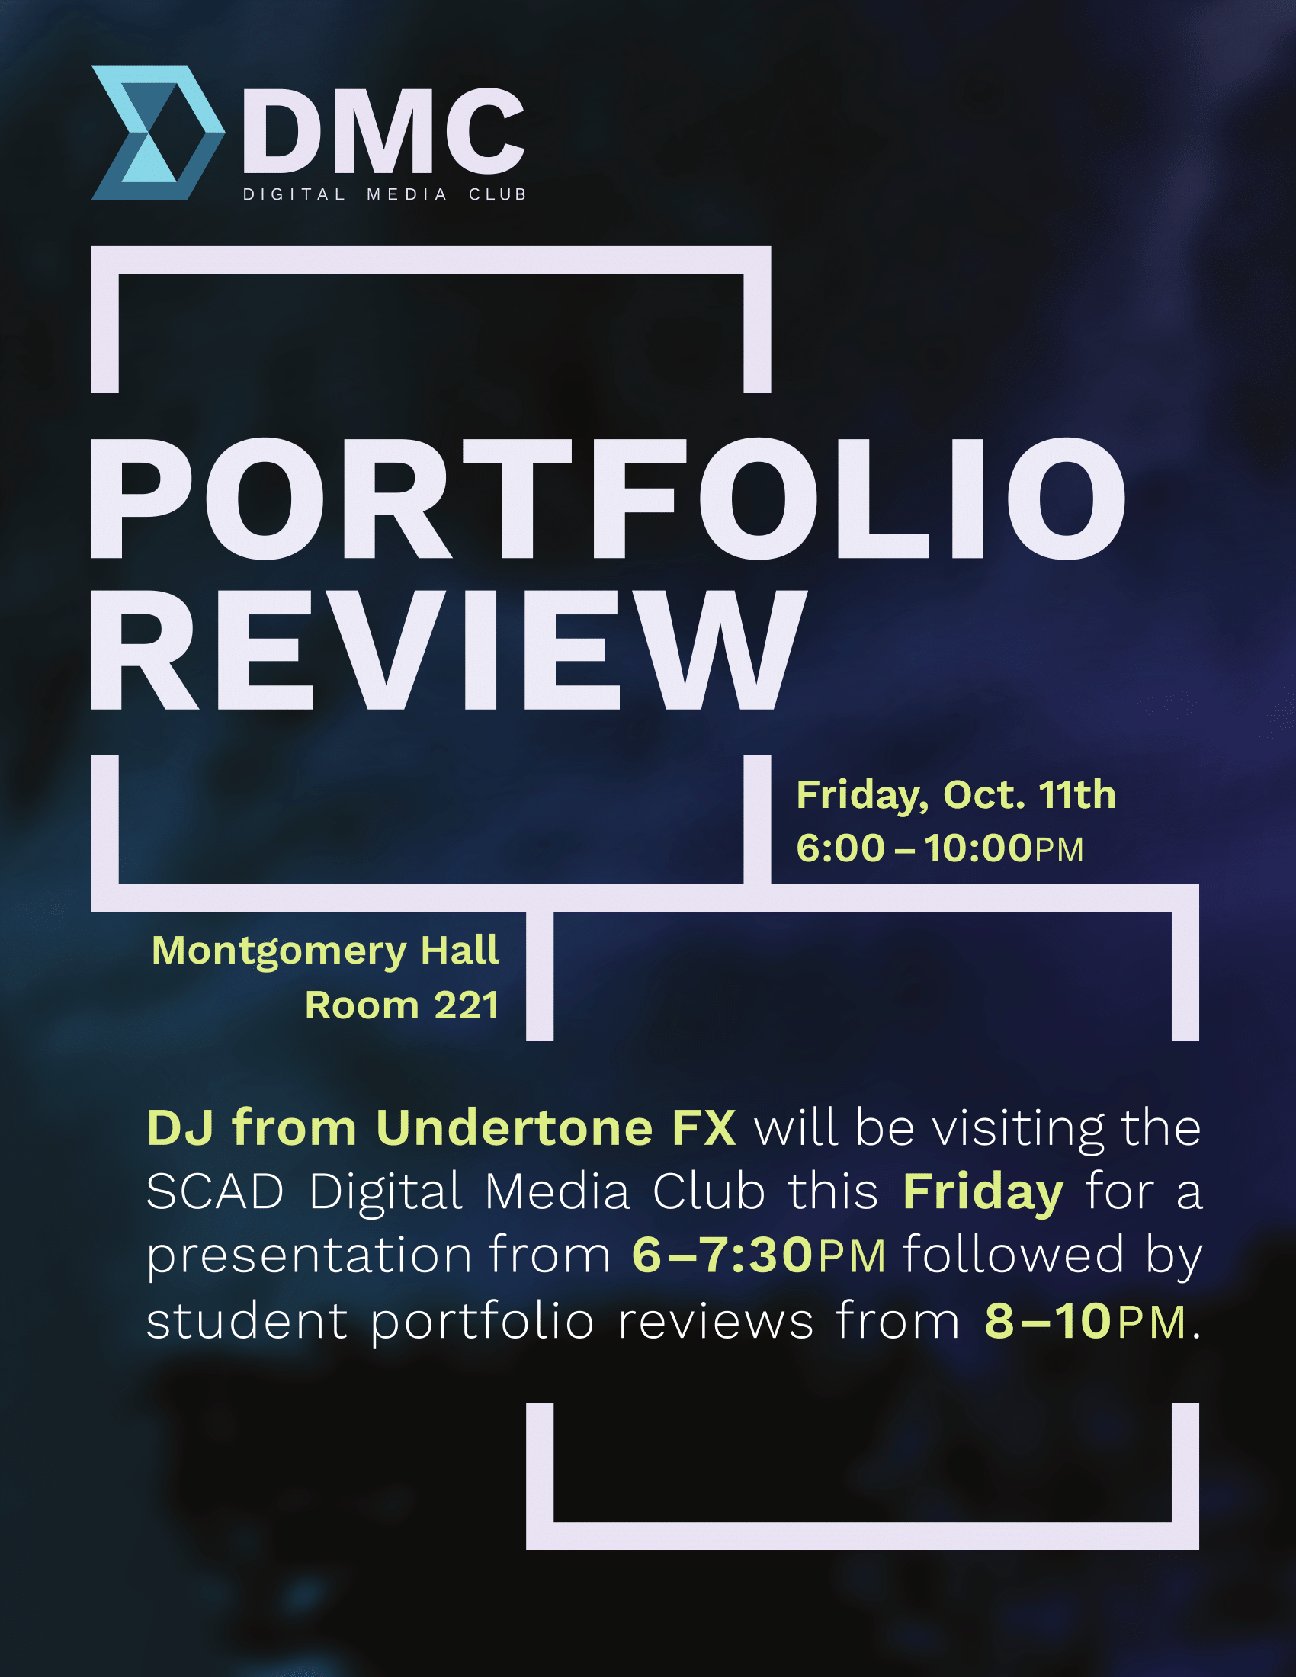 DMC Portfolio Reviews